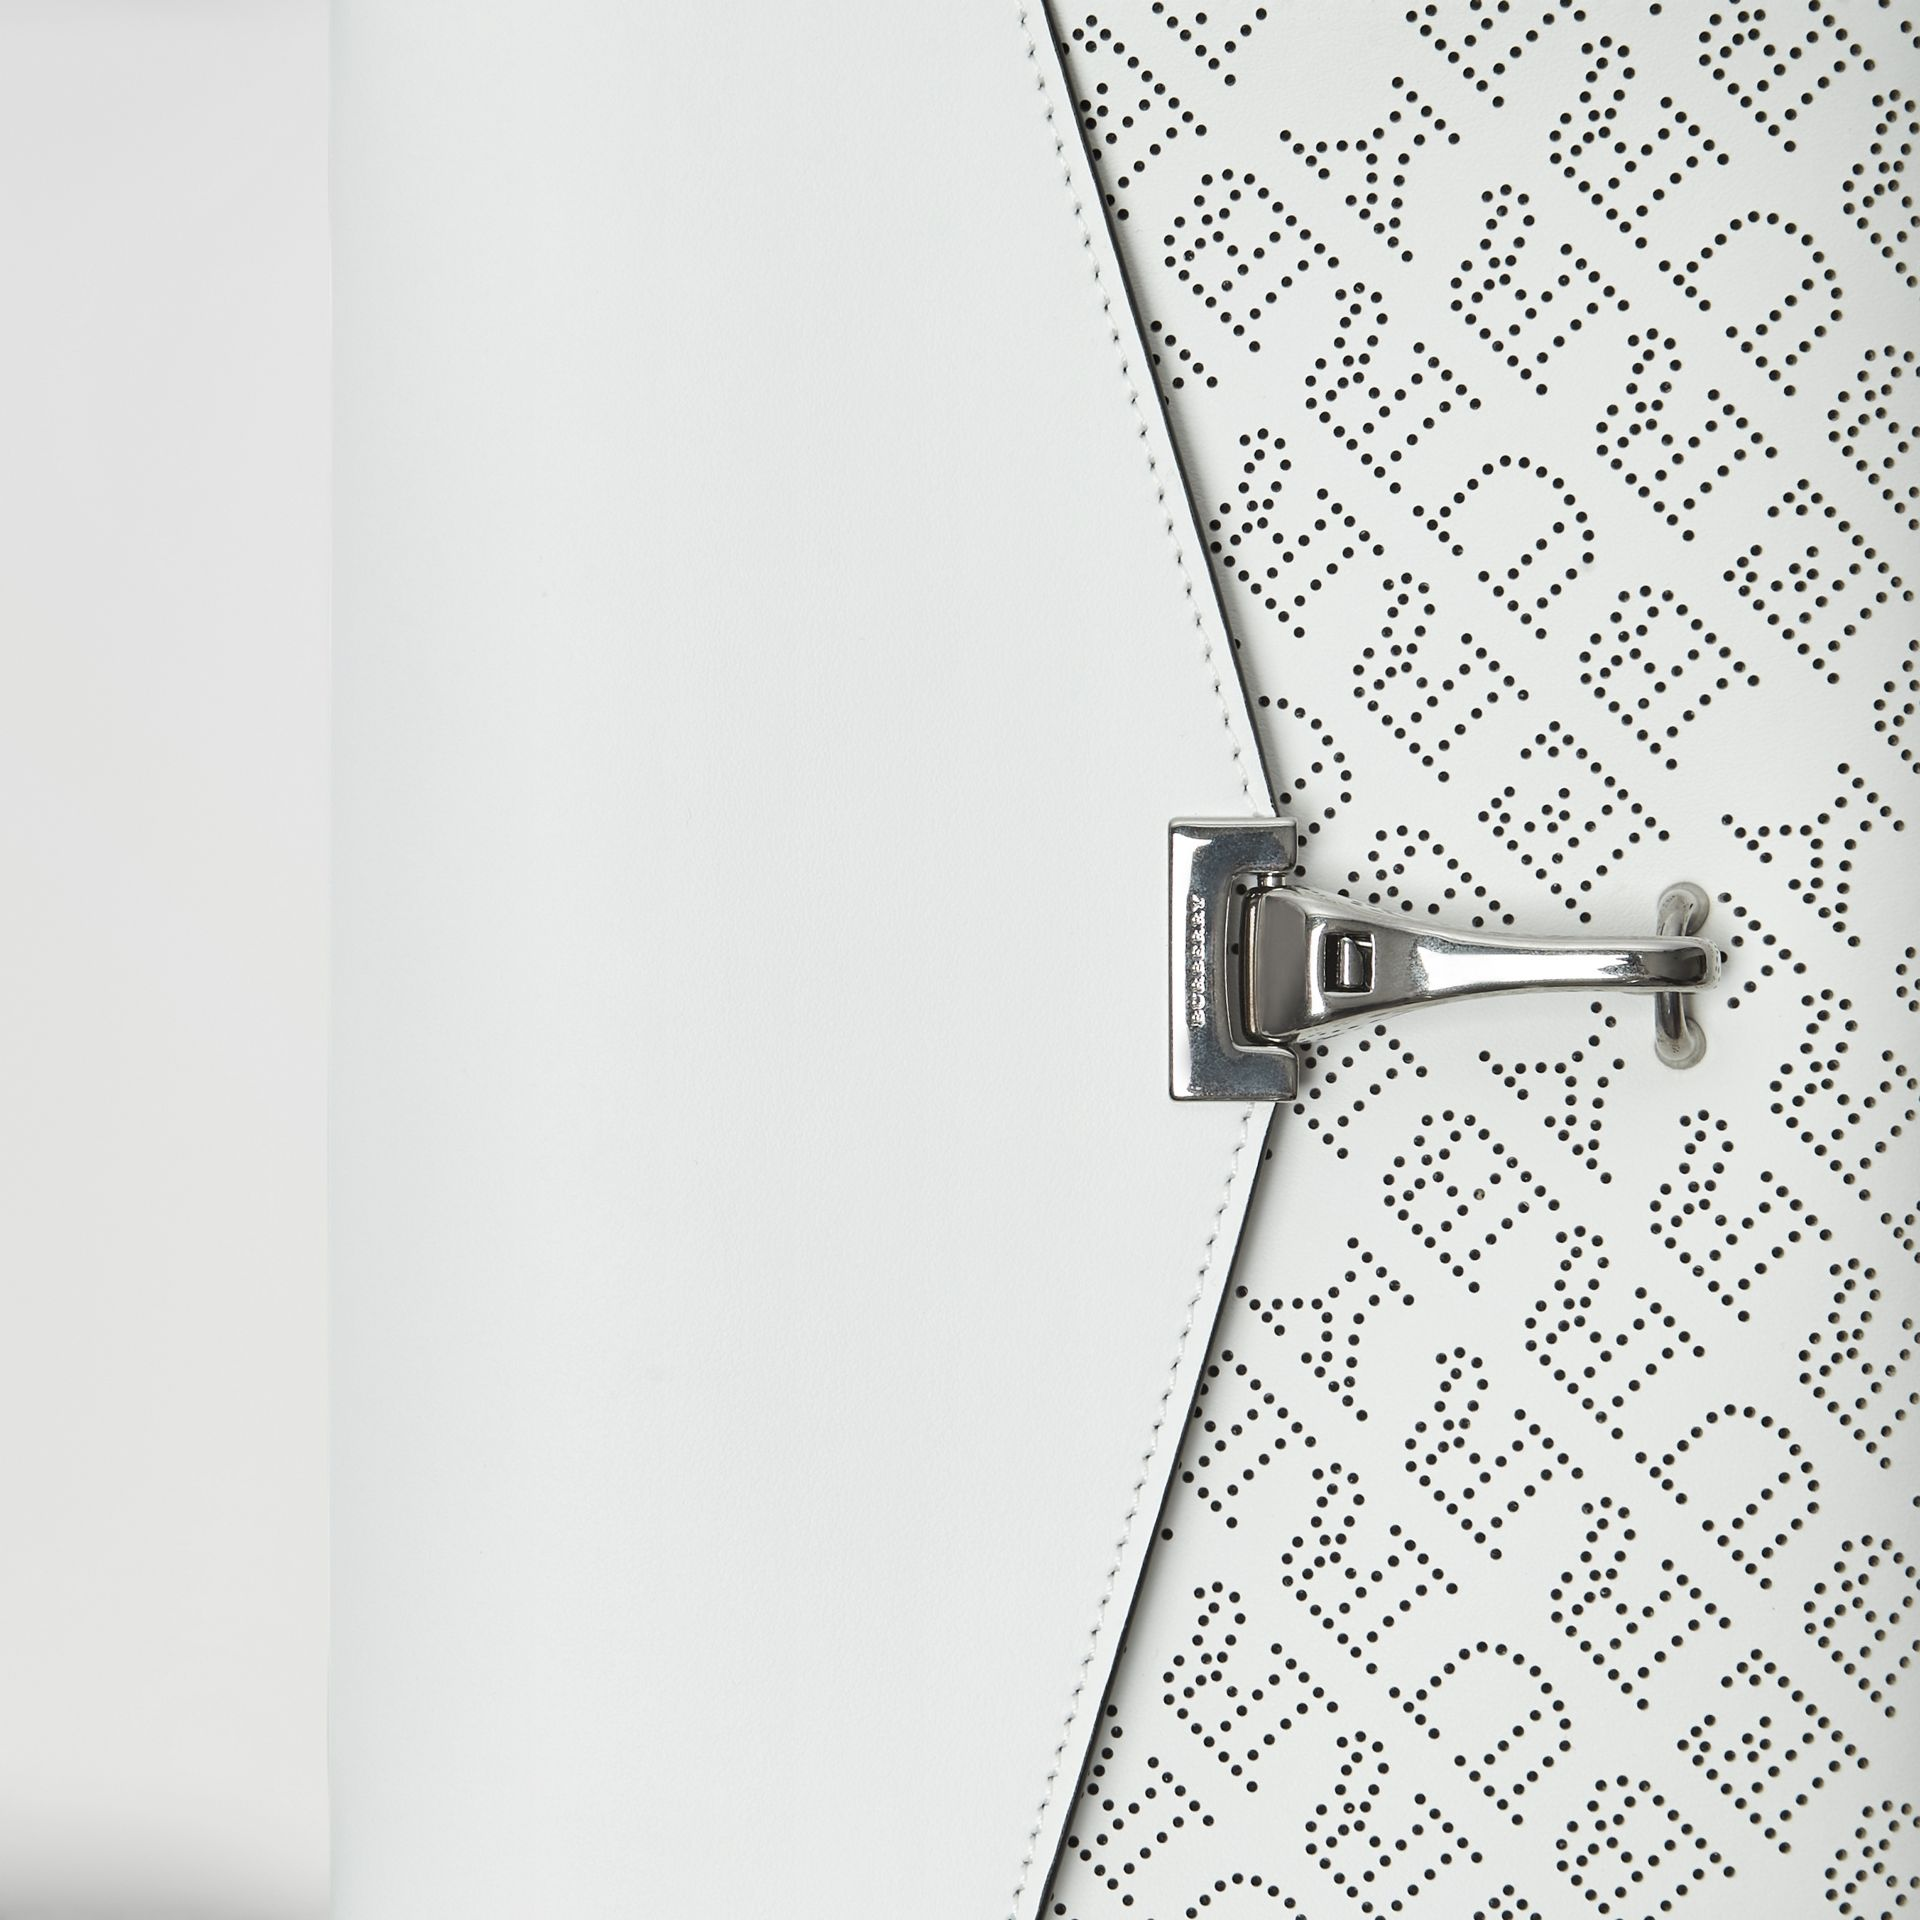 Small Perforated Logo Leather Crossbody Bag in Chalk White - Women | Burberry Hong Kong - gallery image 1